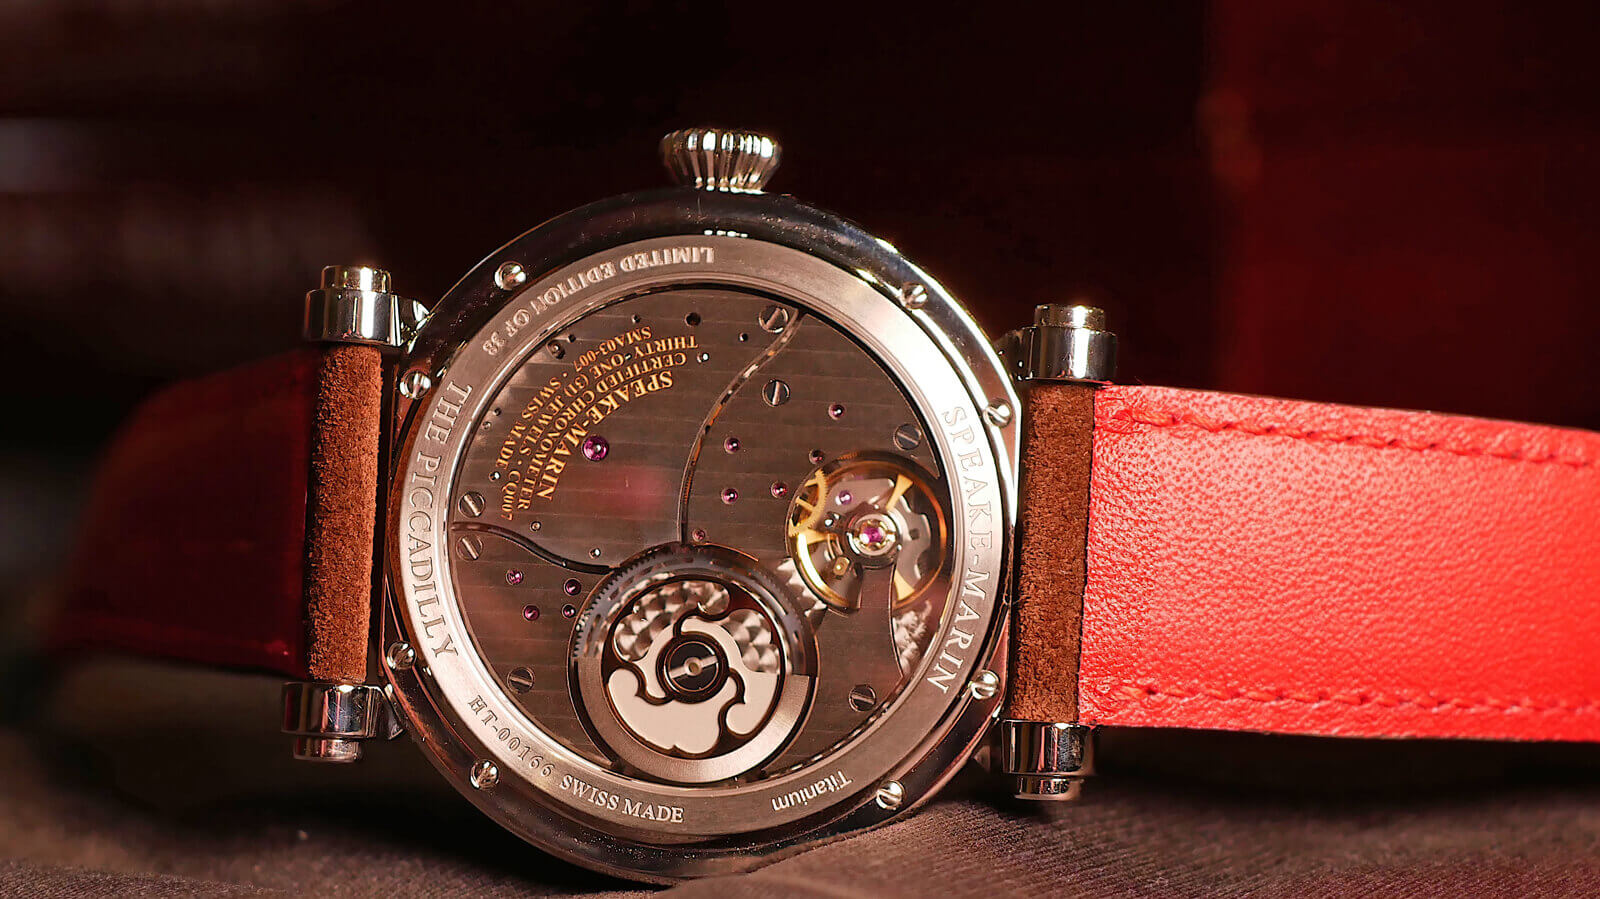 Speake-Marin One & Two Academic - off-centre seconds with in-house movement featuring micro-rotor